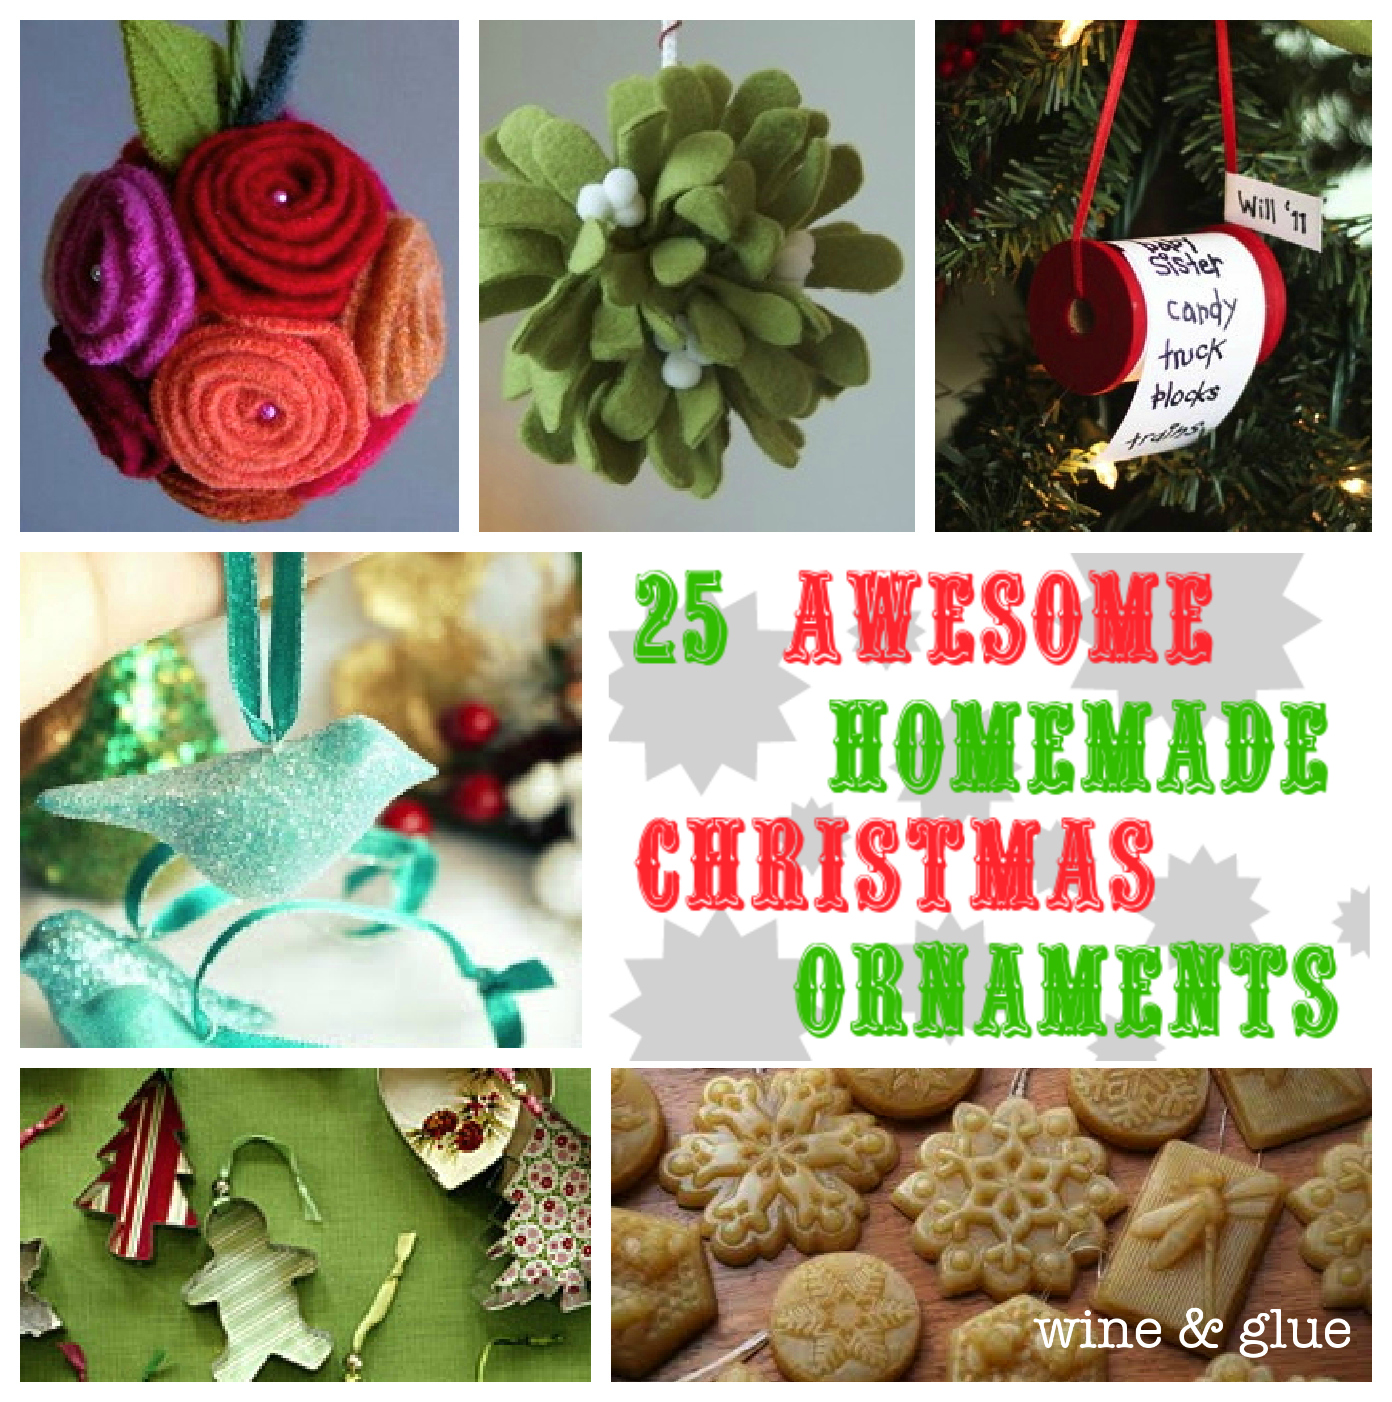 Christmas Ornaments - Wine & Glue